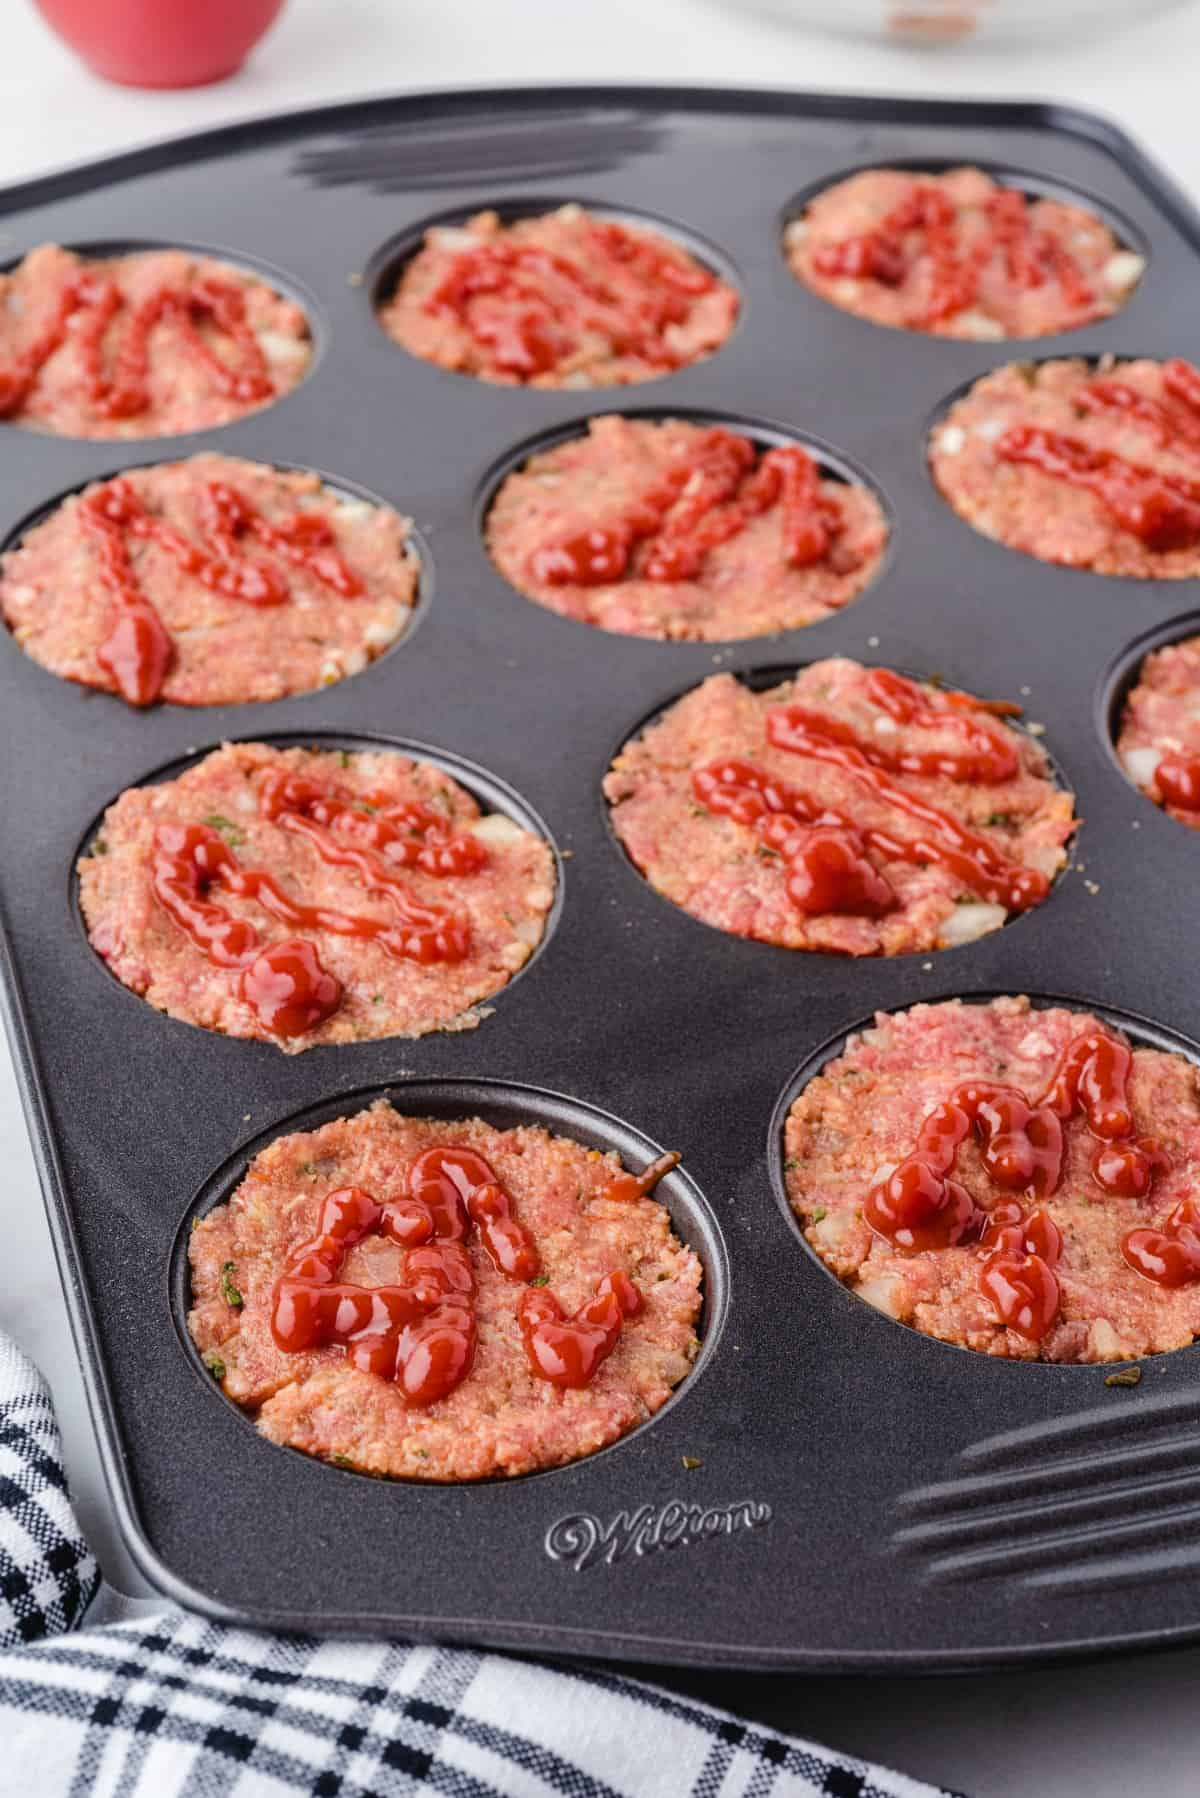 ketchup on meatloaf in muffin pan